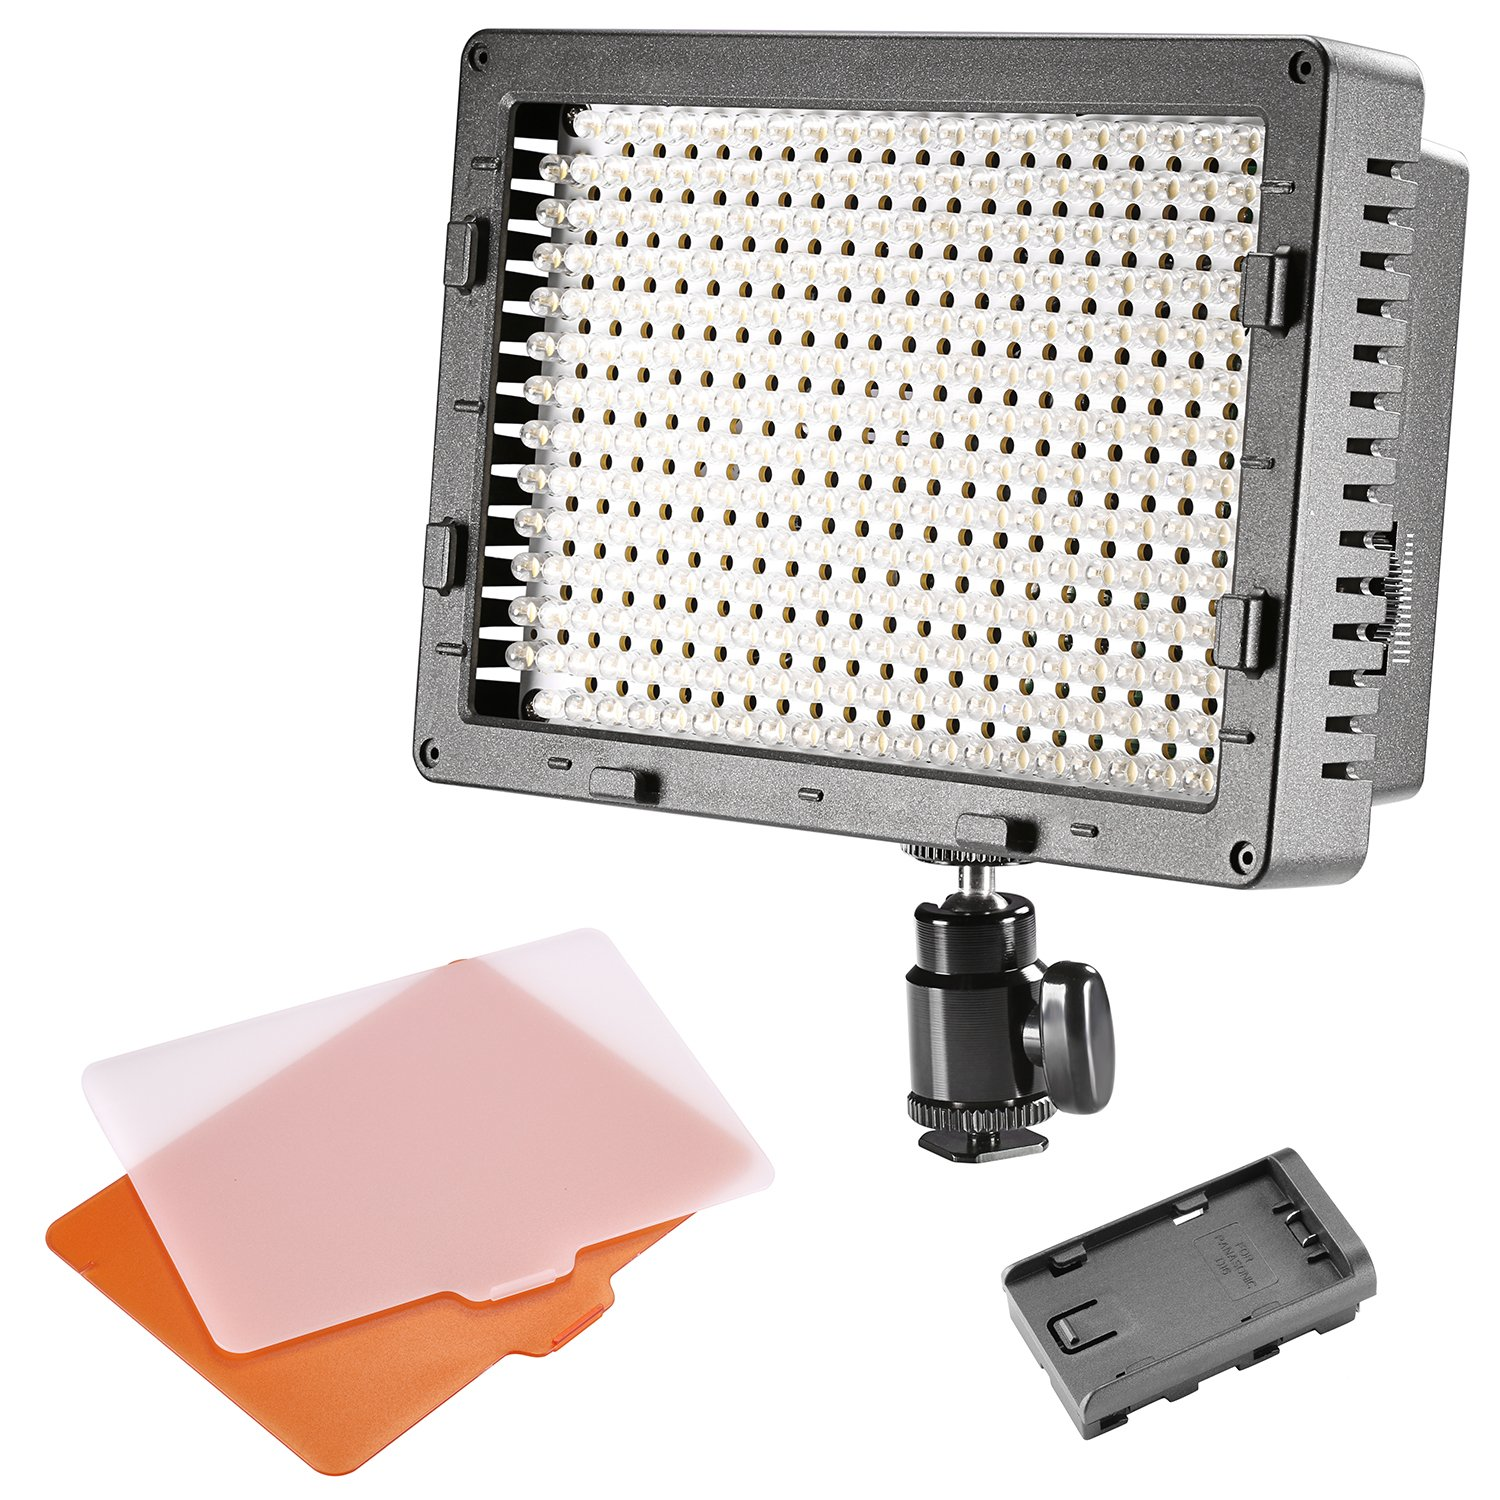 NEEWER CN-304 304PCS LED Dimmable Ultra High Power Panel Digital Camera/Camcorder Video Light, LED Light for Canon, Nikon, Pentax, Panasonic, SONY, Samsung and Olympus Digital SLR Cameras